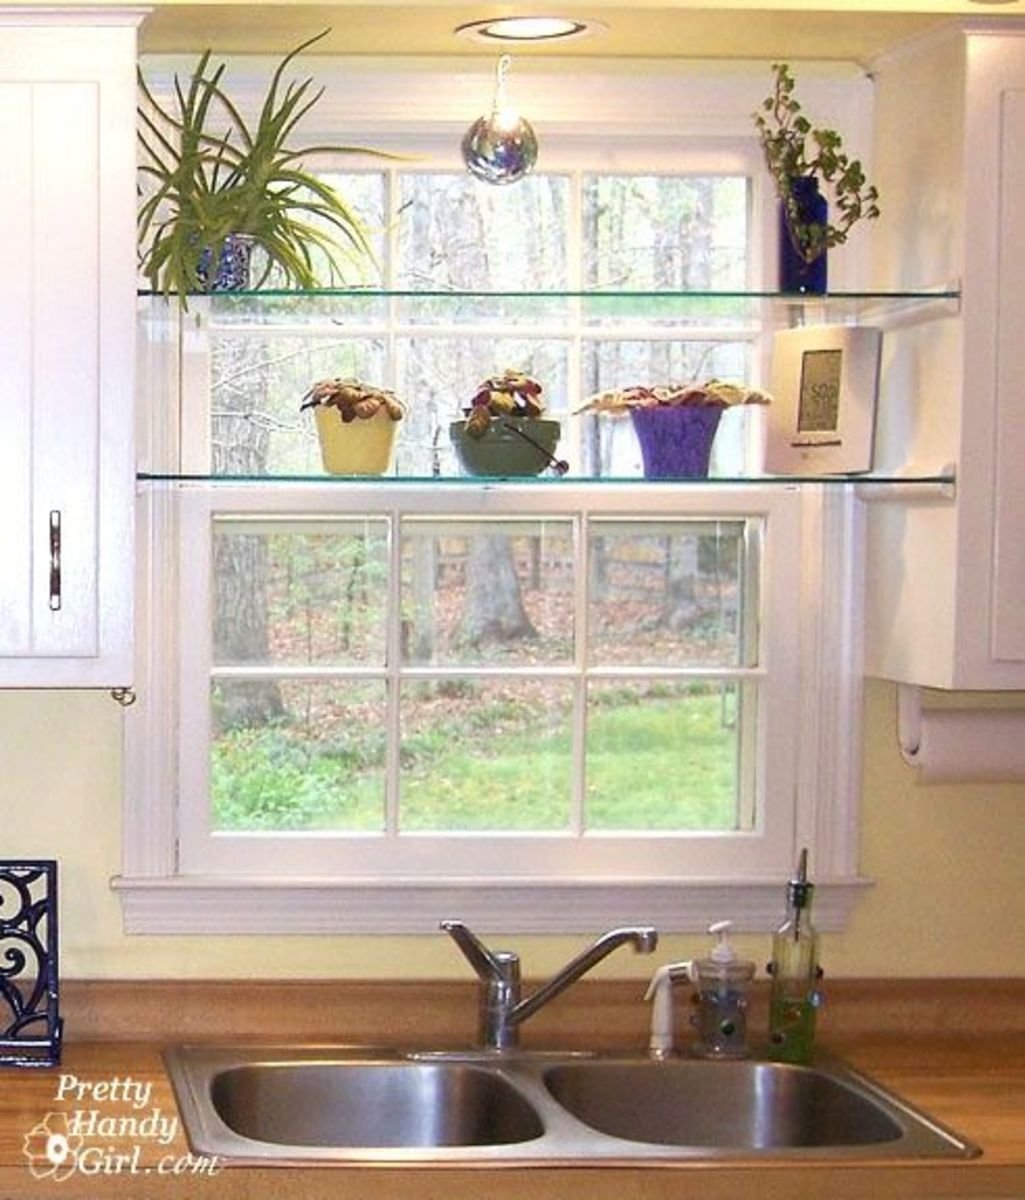 Installs your own glass shelves between two kitchen cabinets. Several are some of the plants. The glasses are shelves between the cabinets and over the window and above the sink.